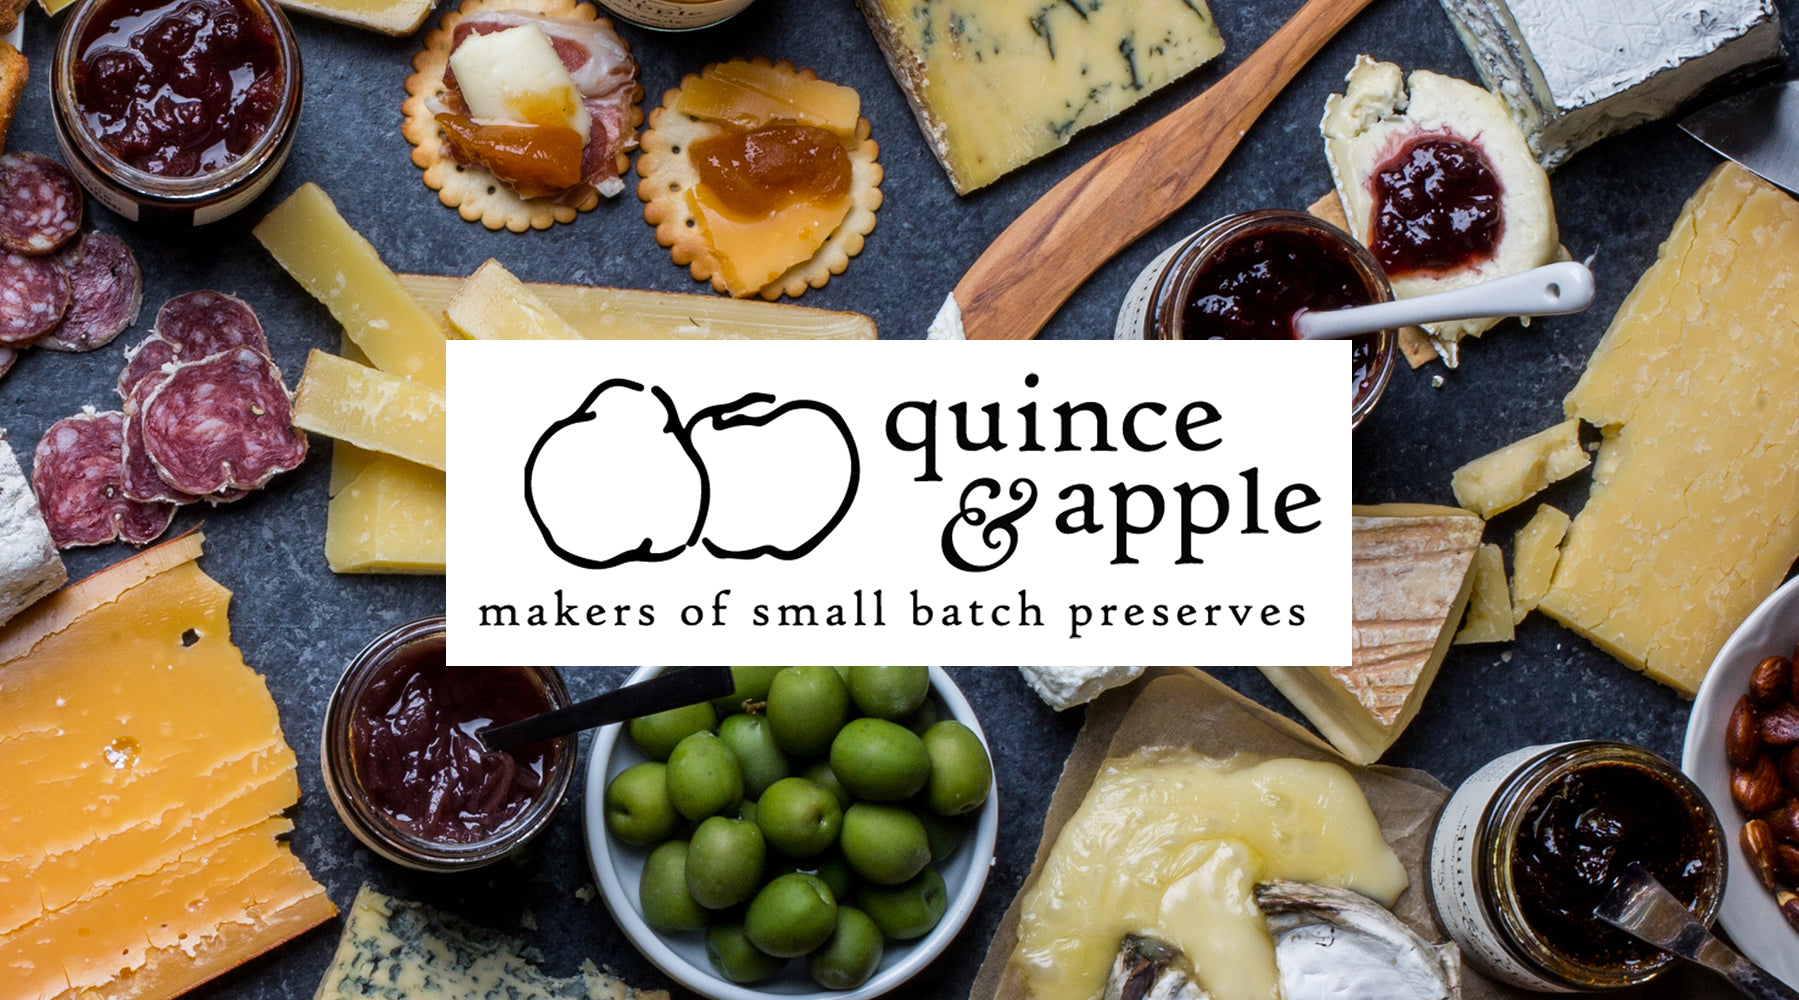 Gourmet Jams and Preserves